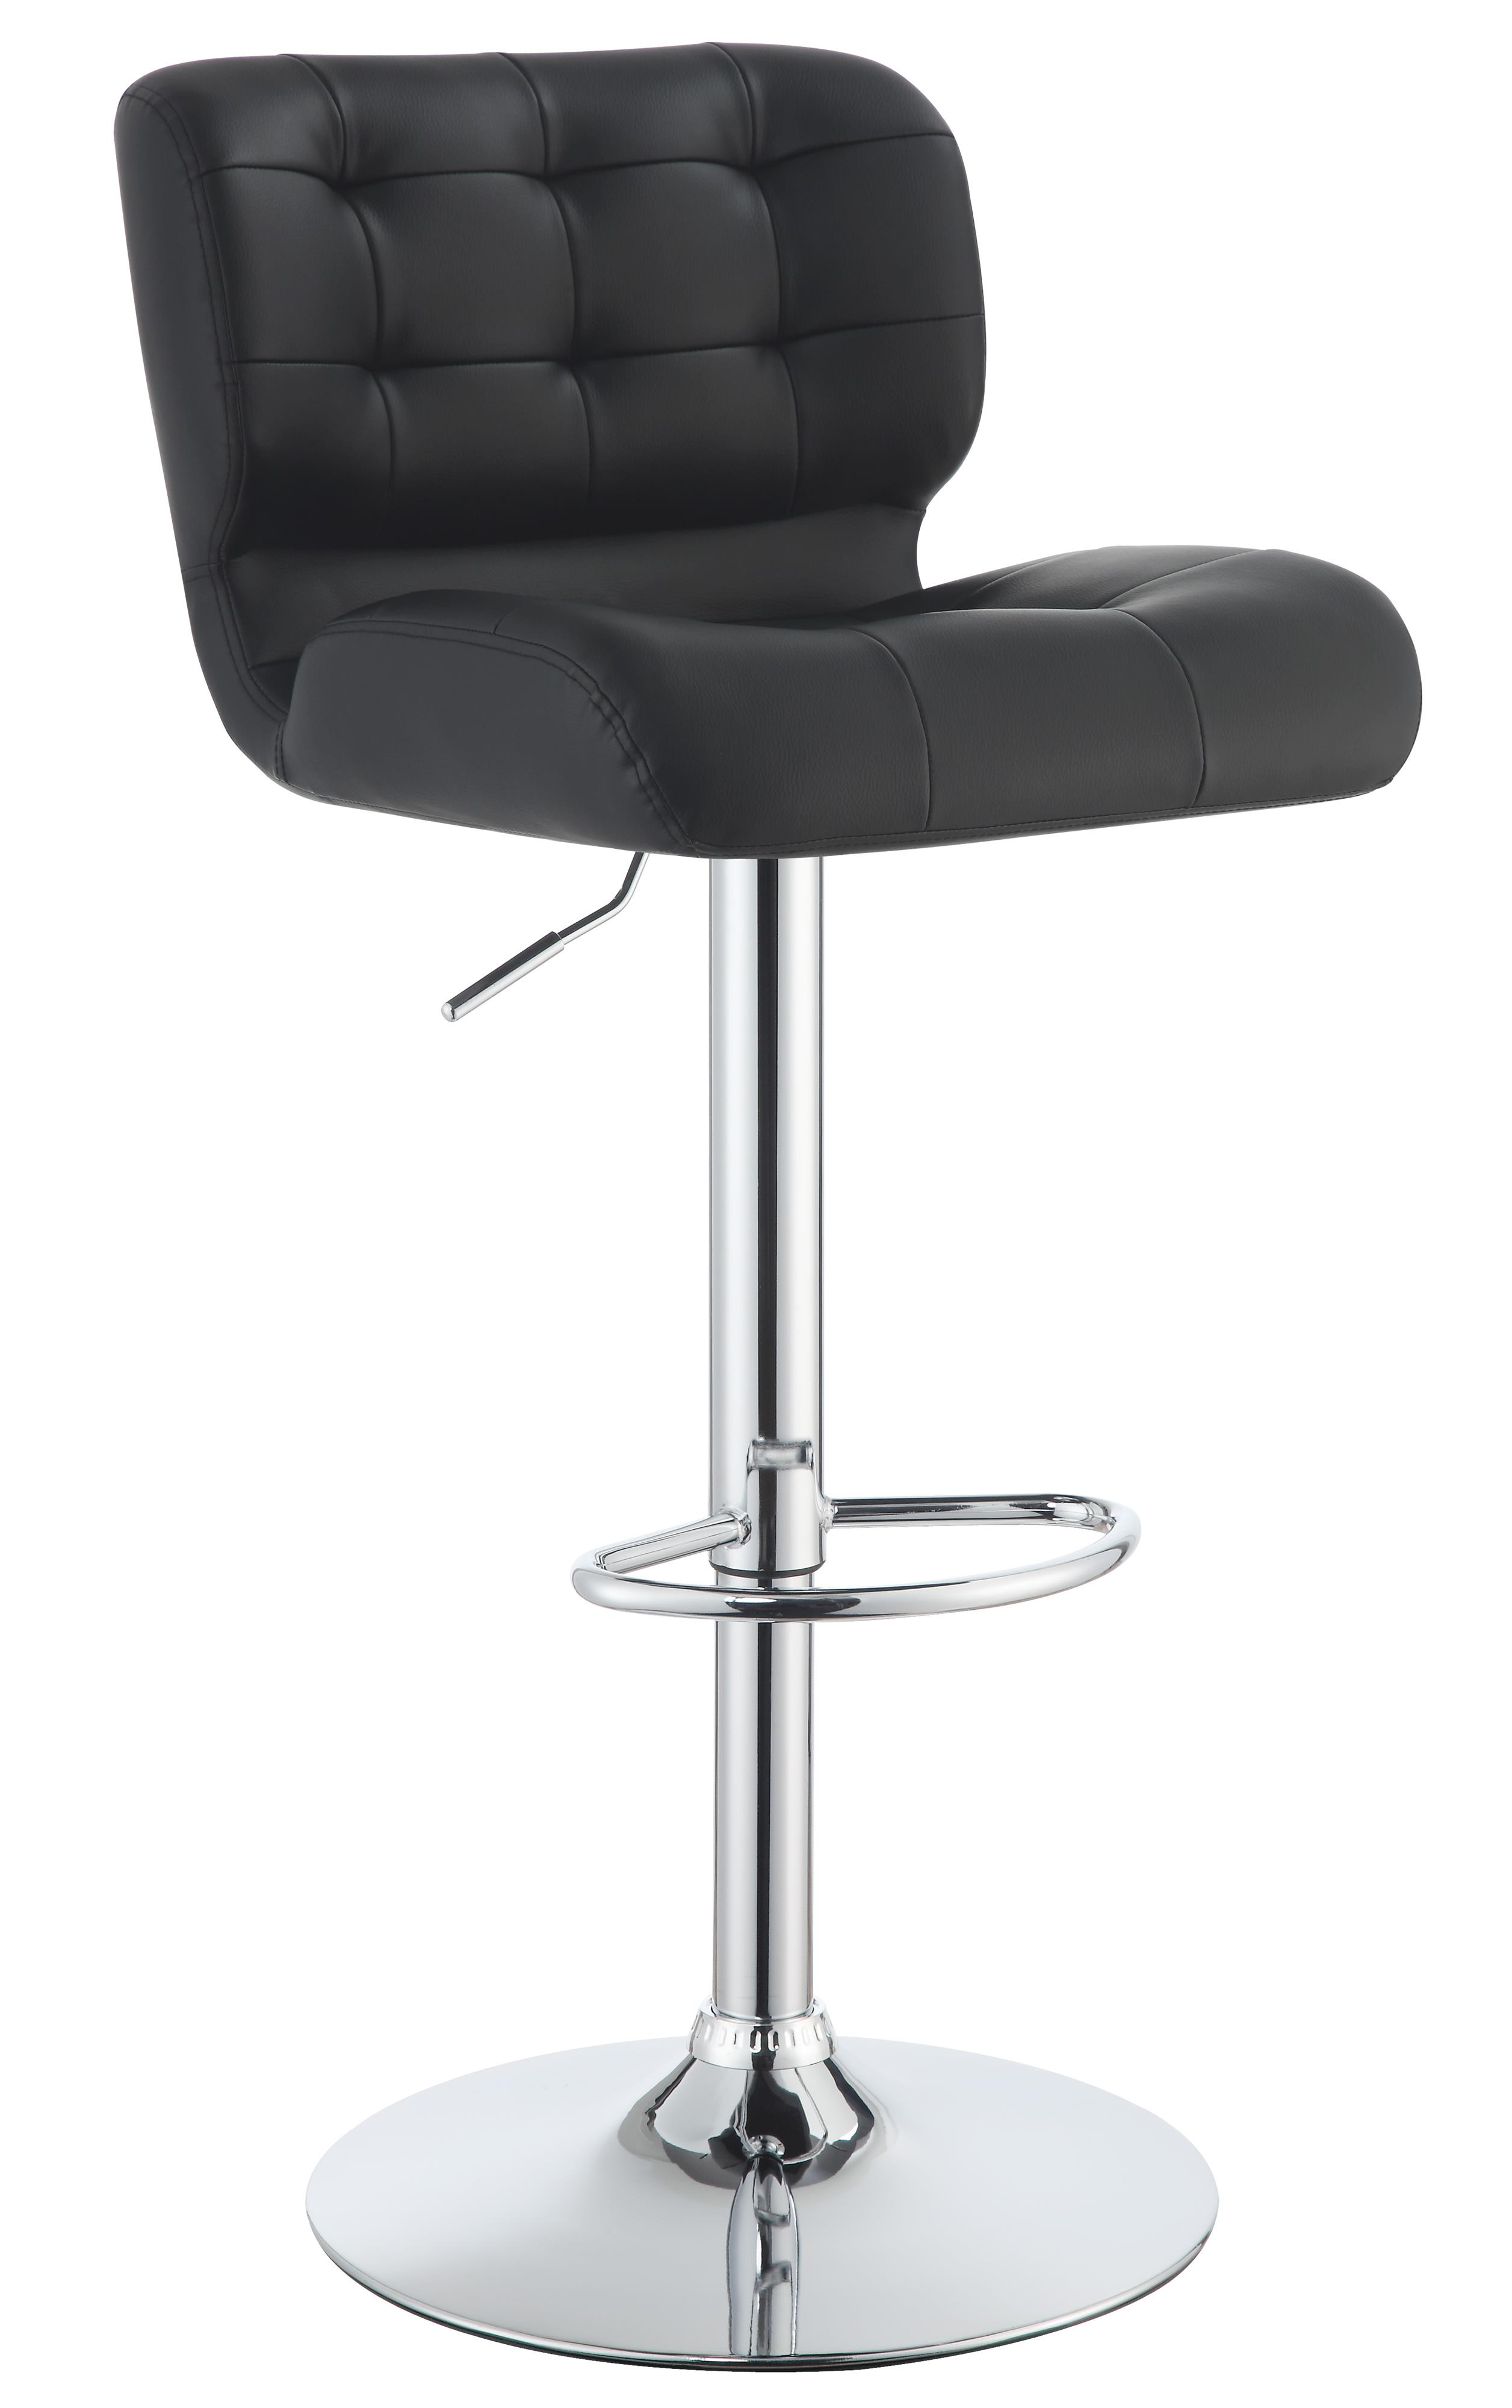 Coaster Dining Chairs And Bar Stools 100543 Adjustable Bar Stool Northeast Factory Direct